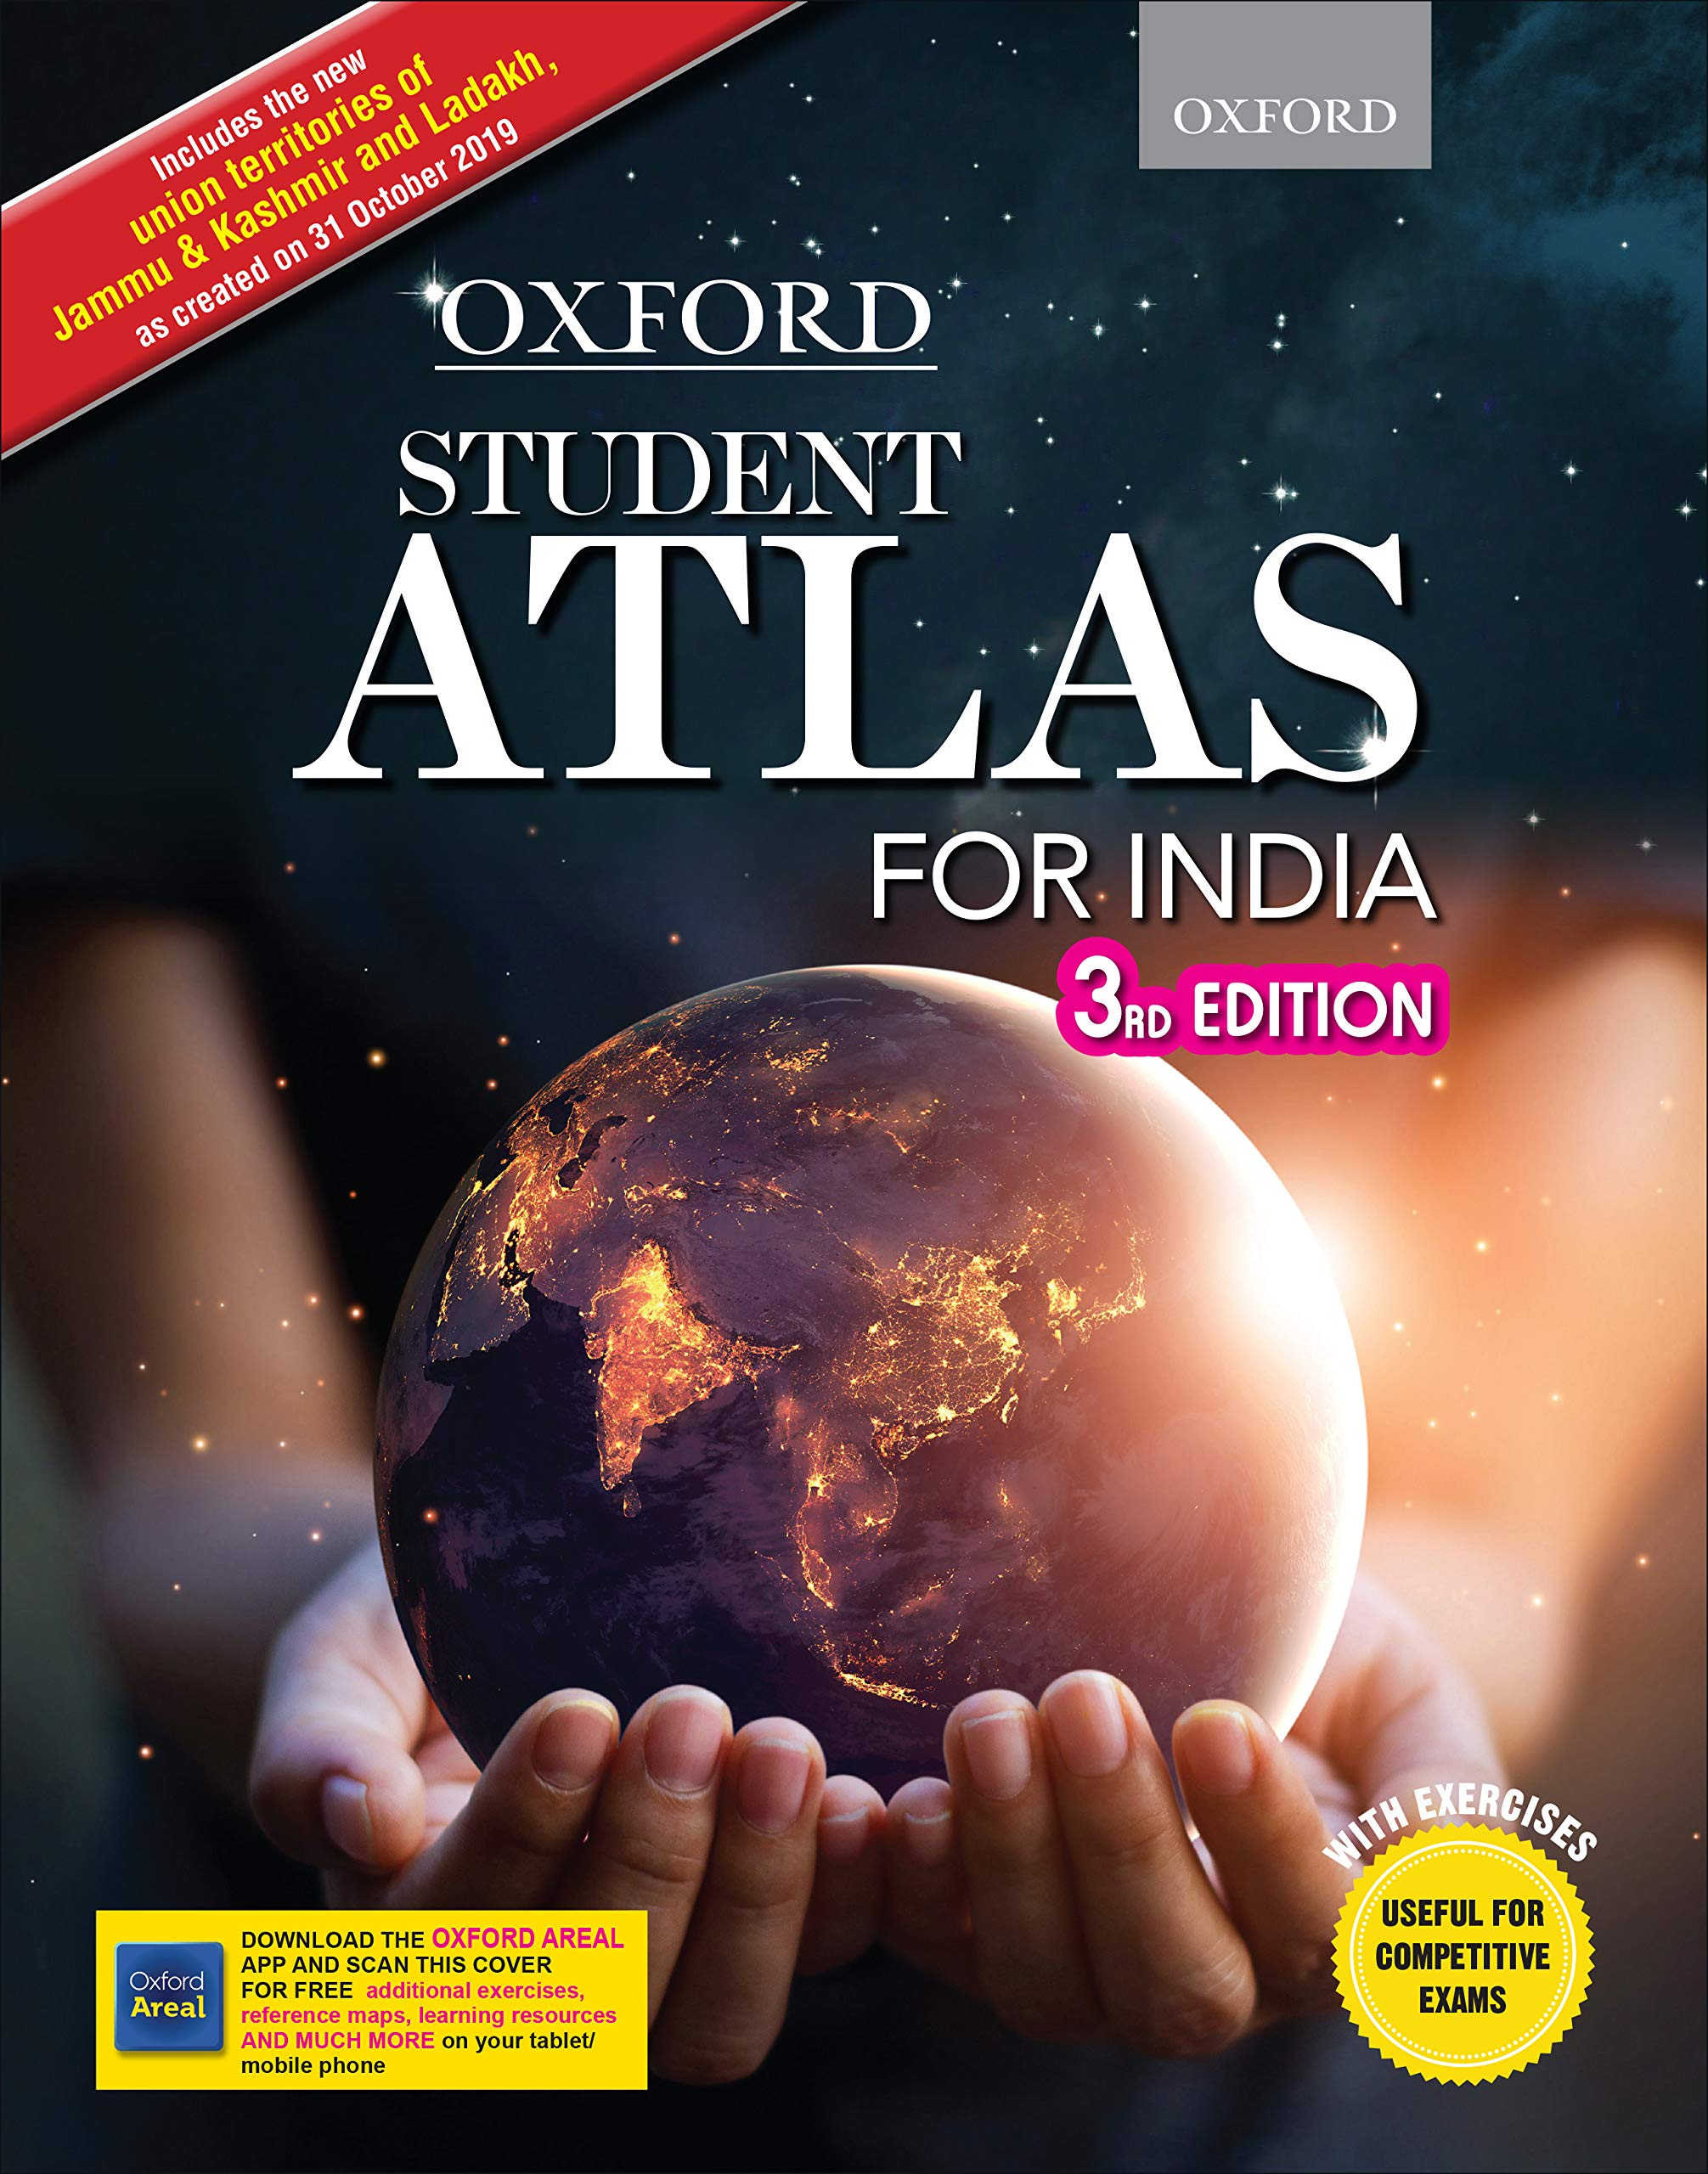 Oxford Student Atlas for India - Third Edition Paperback – 1 December 2019